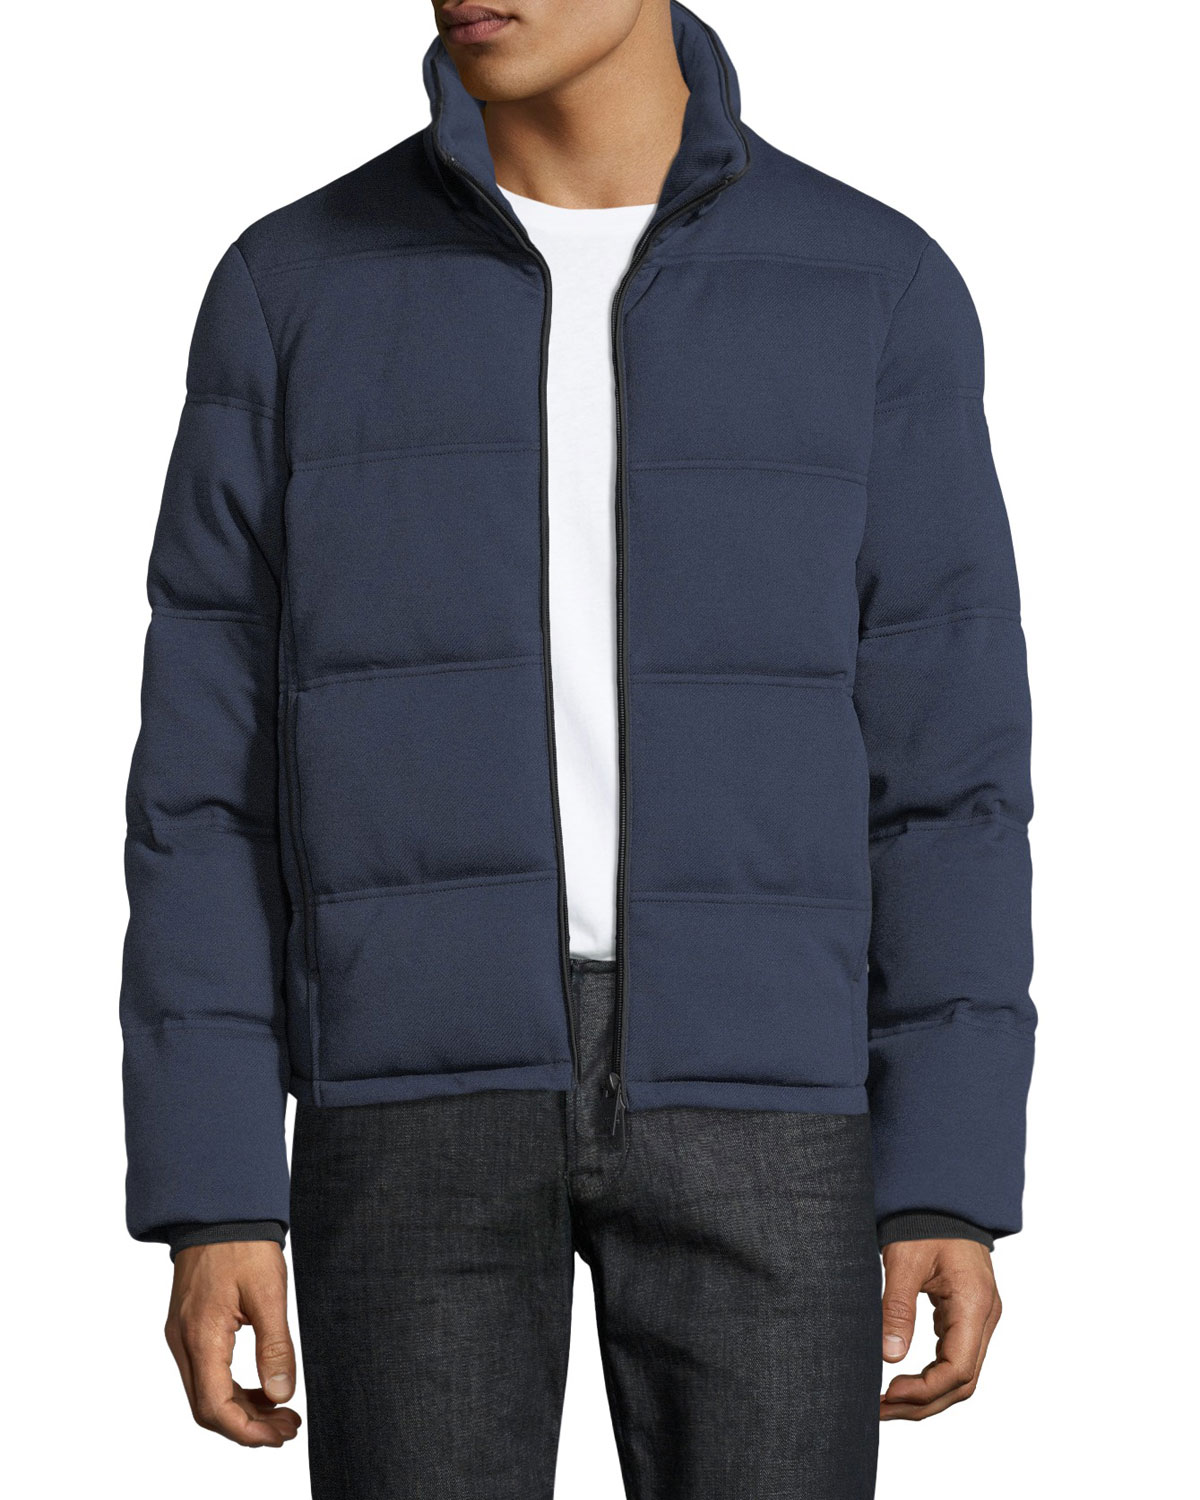 1d5aacf514 Men's Quilted Yarn-Dyed Puffer Jacket